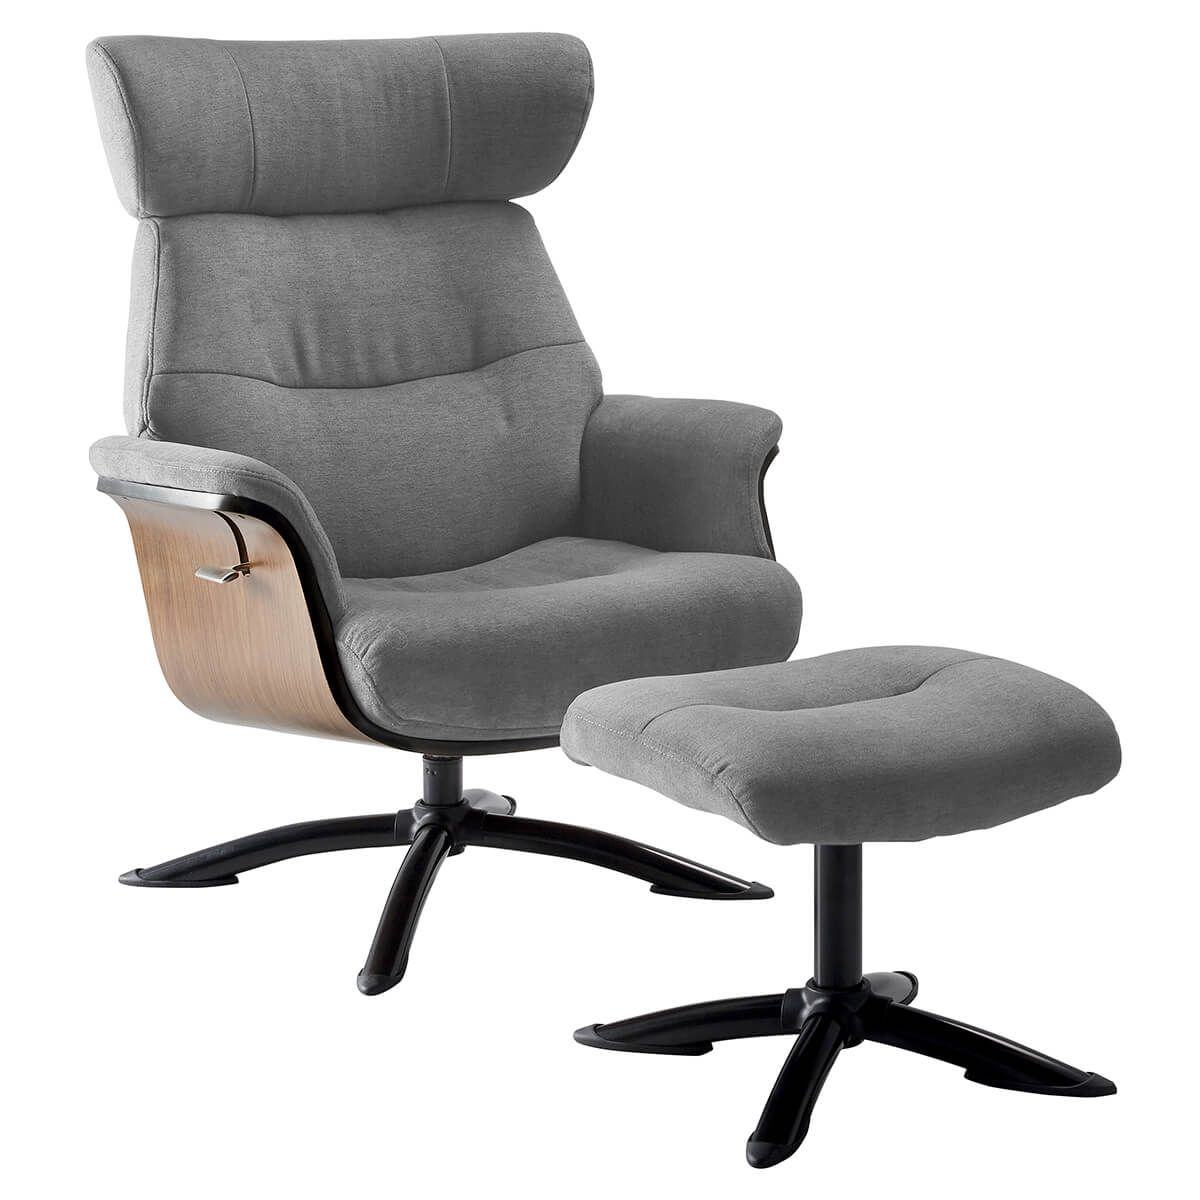 Fauteuil Inclinable + Repose-Pieds Gris